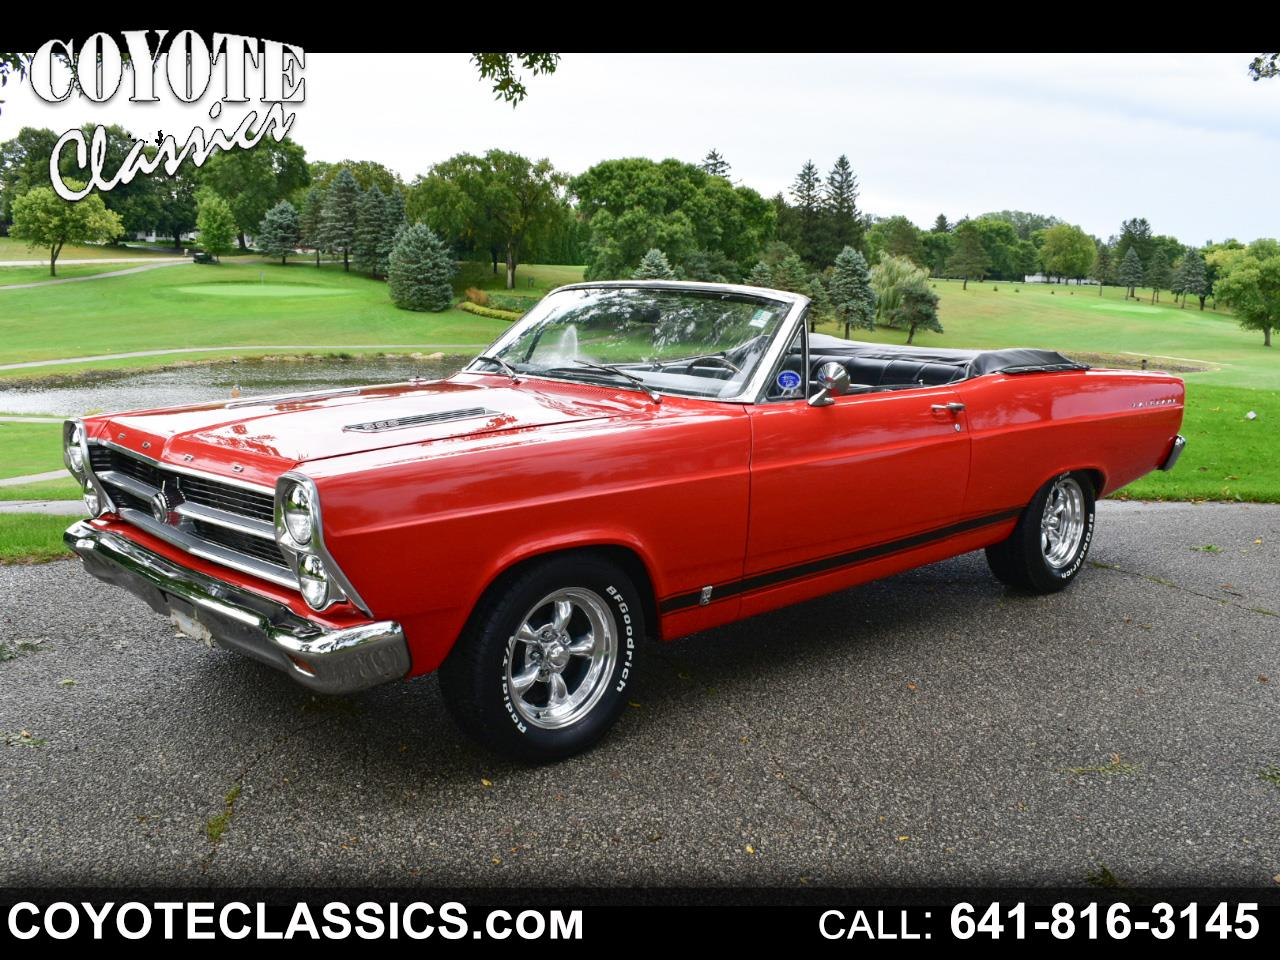 1966 Ford Fairlane GT Convertible